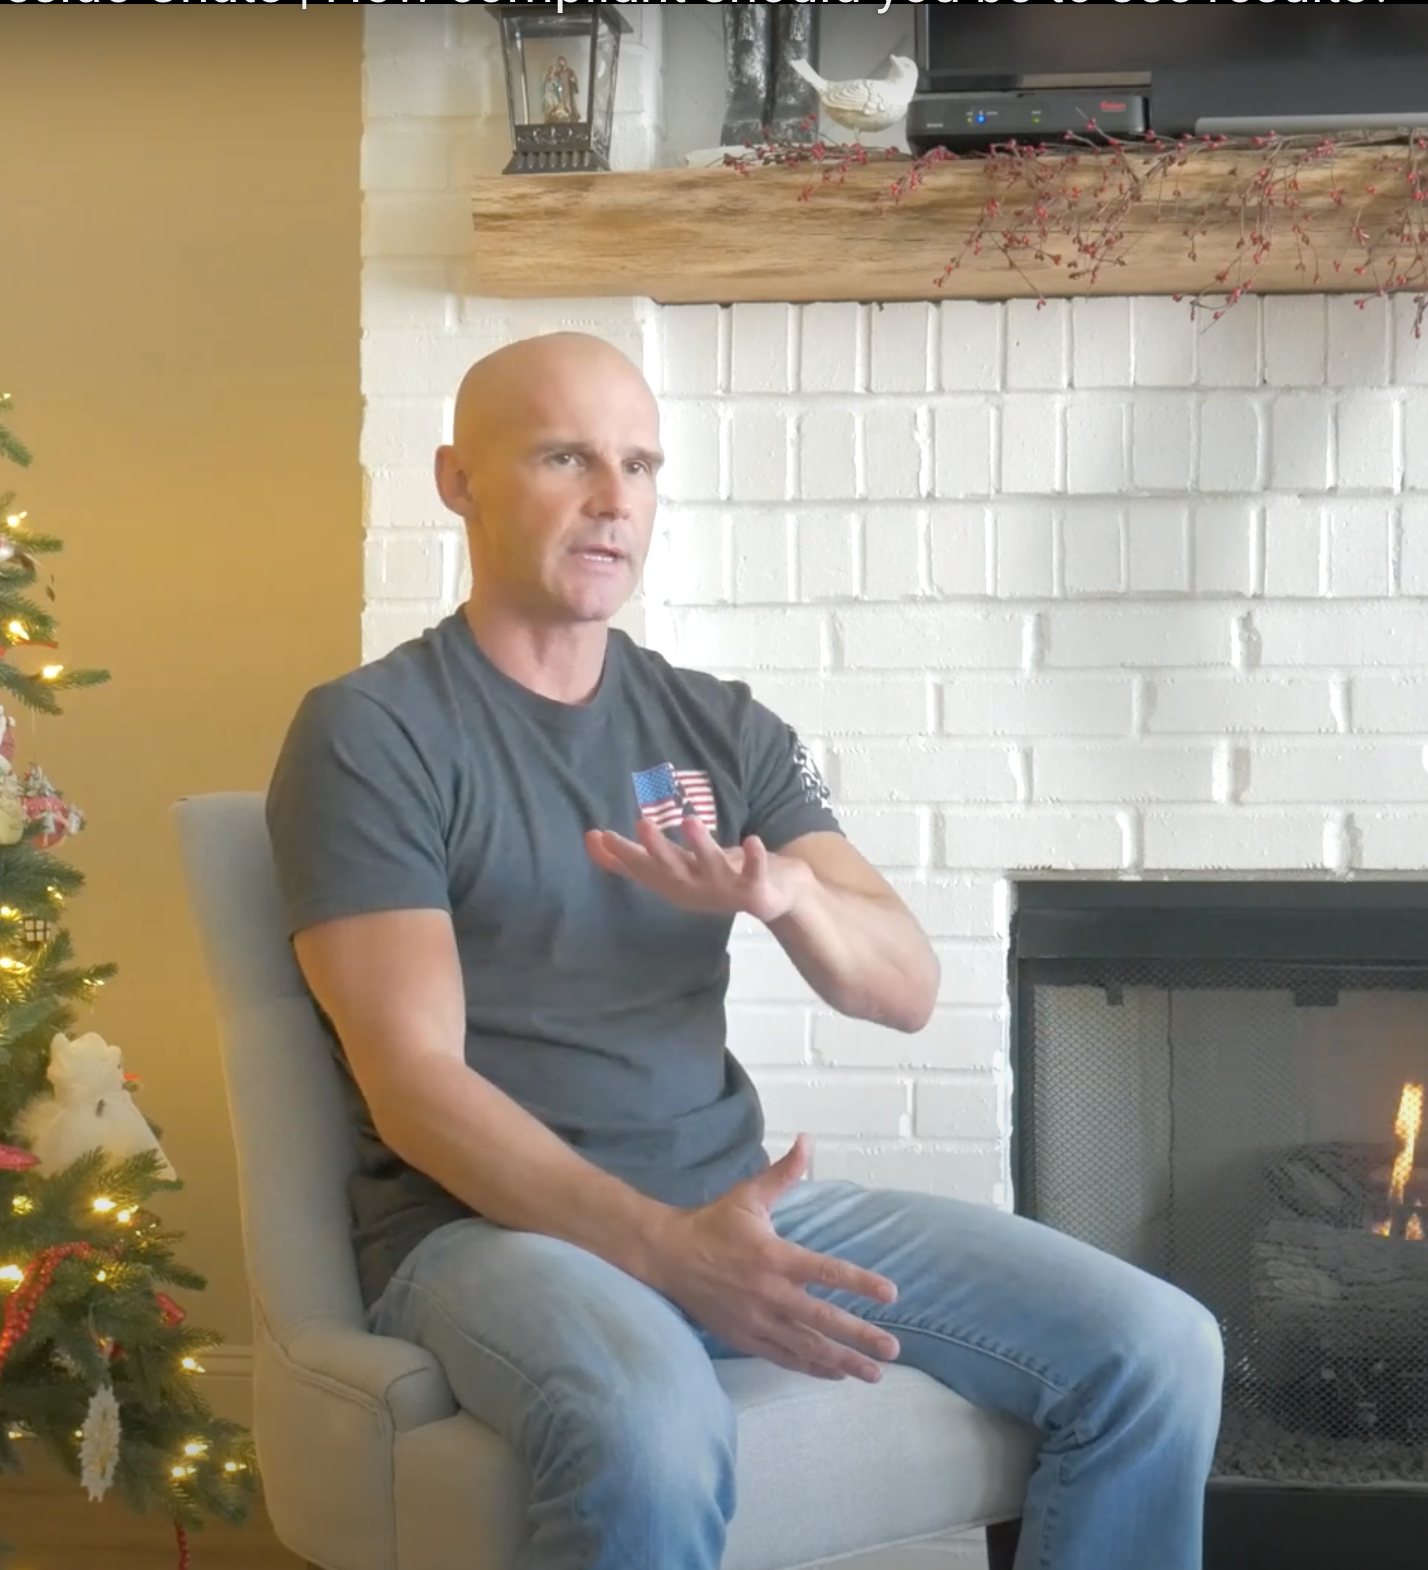 Fireside Chat 7: Compliance to See Results